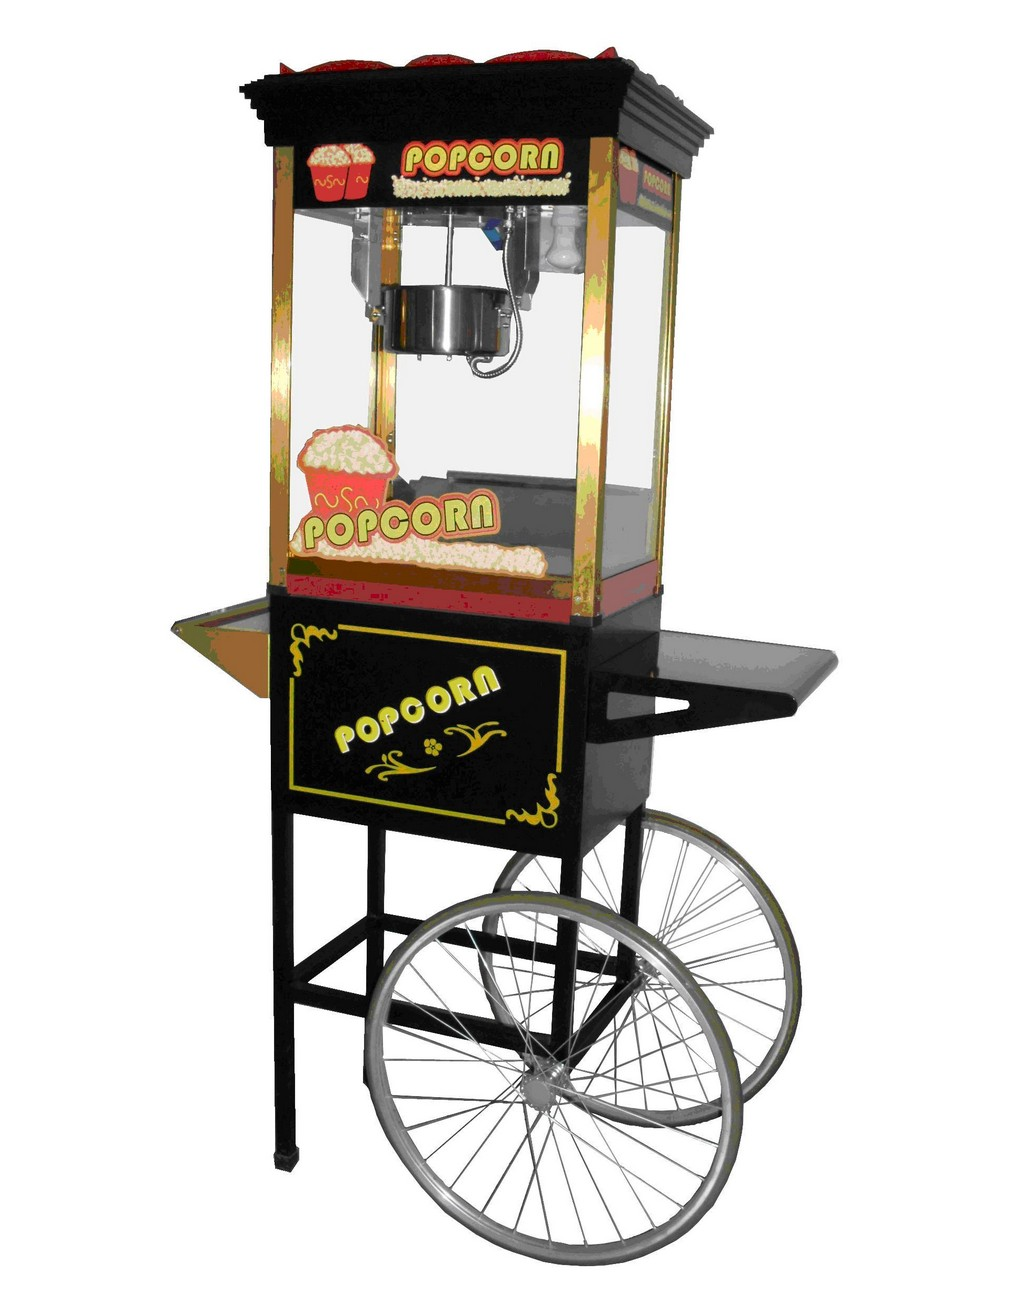 popcorn machine for rent, popcorn machine columbus ohio, buy a popcorn machine